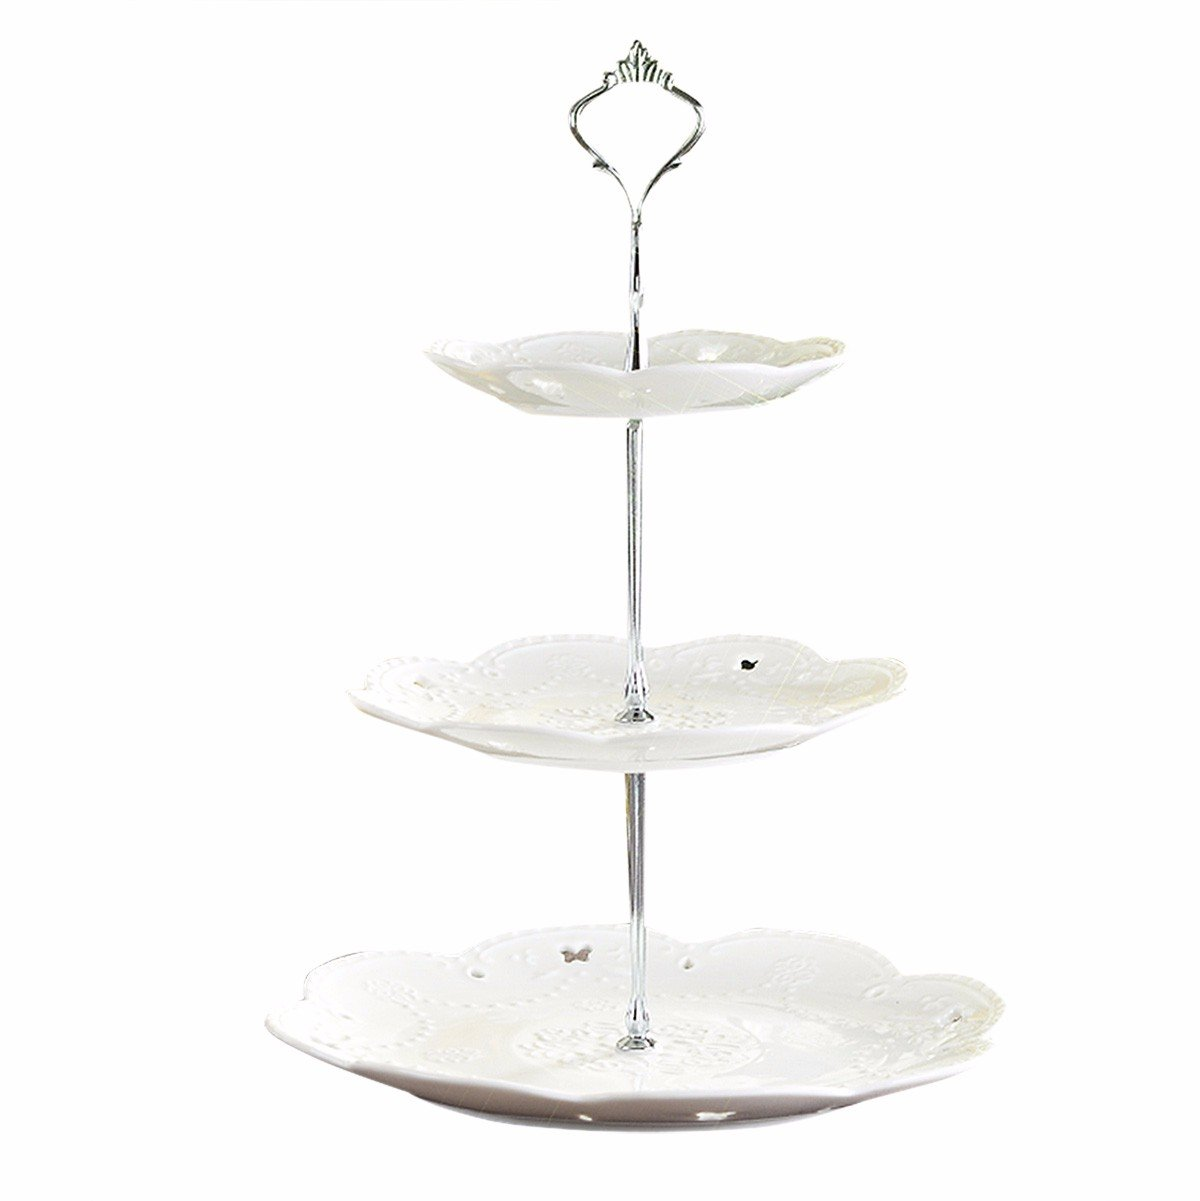 iiniim 1 Set Crown 3 Tier Fruits Cake Cupcake Plate Stand Handle Hardware Fitting Holder Silver One Size